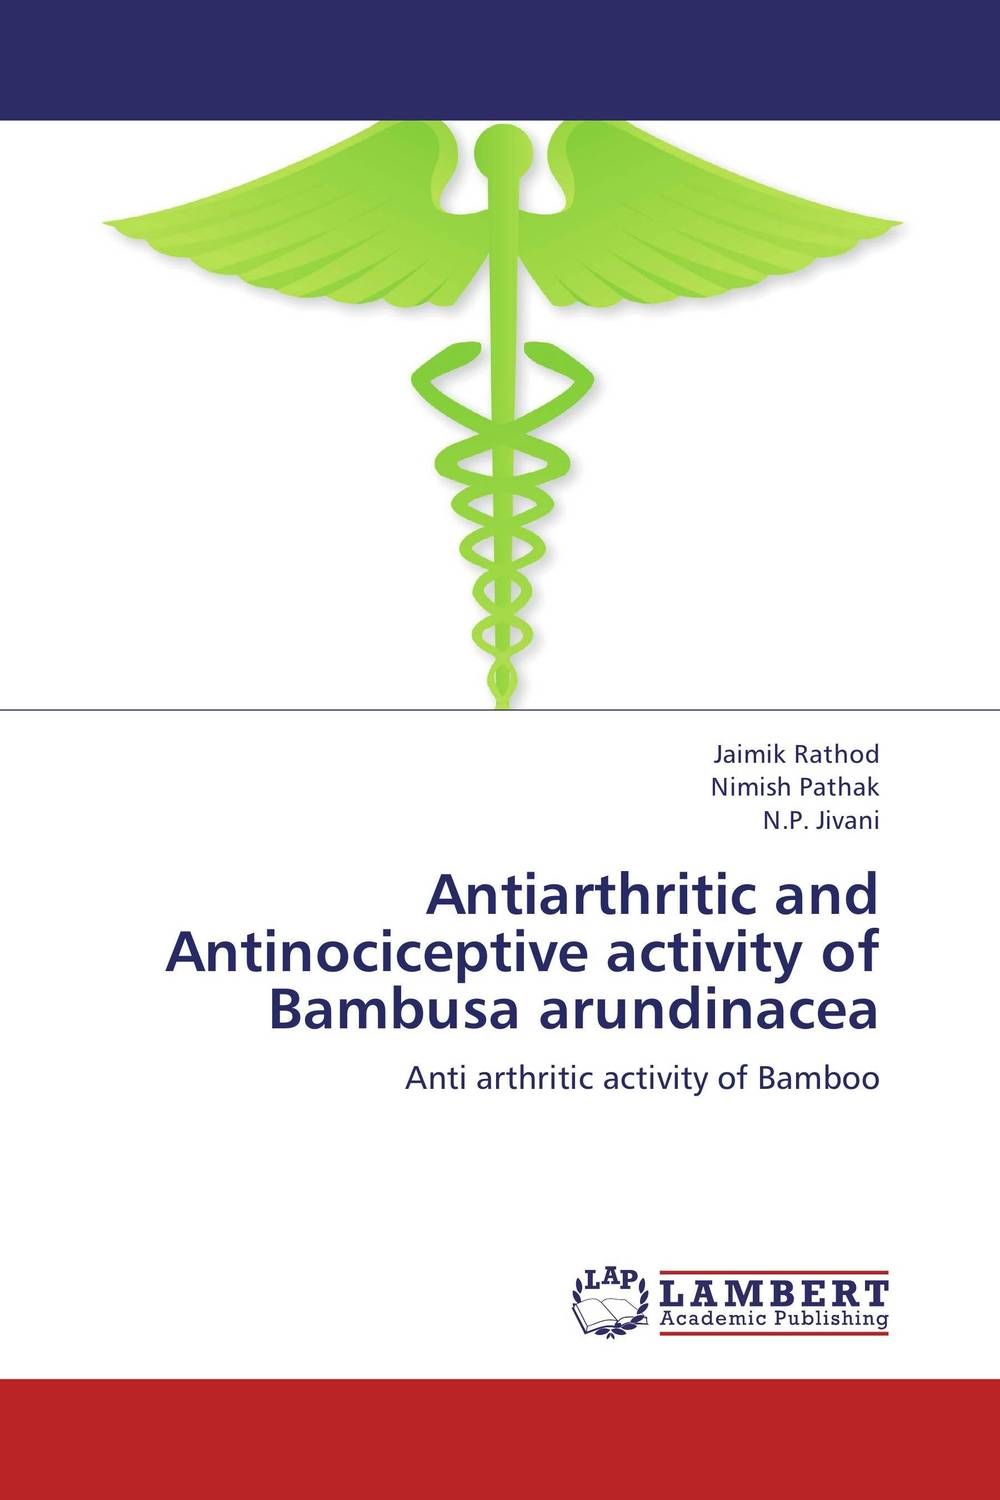 Antiarthritic and Antinociceptive activity of Bambusa arundinacea persistent rhinitis treatment natural remedies for the treatment